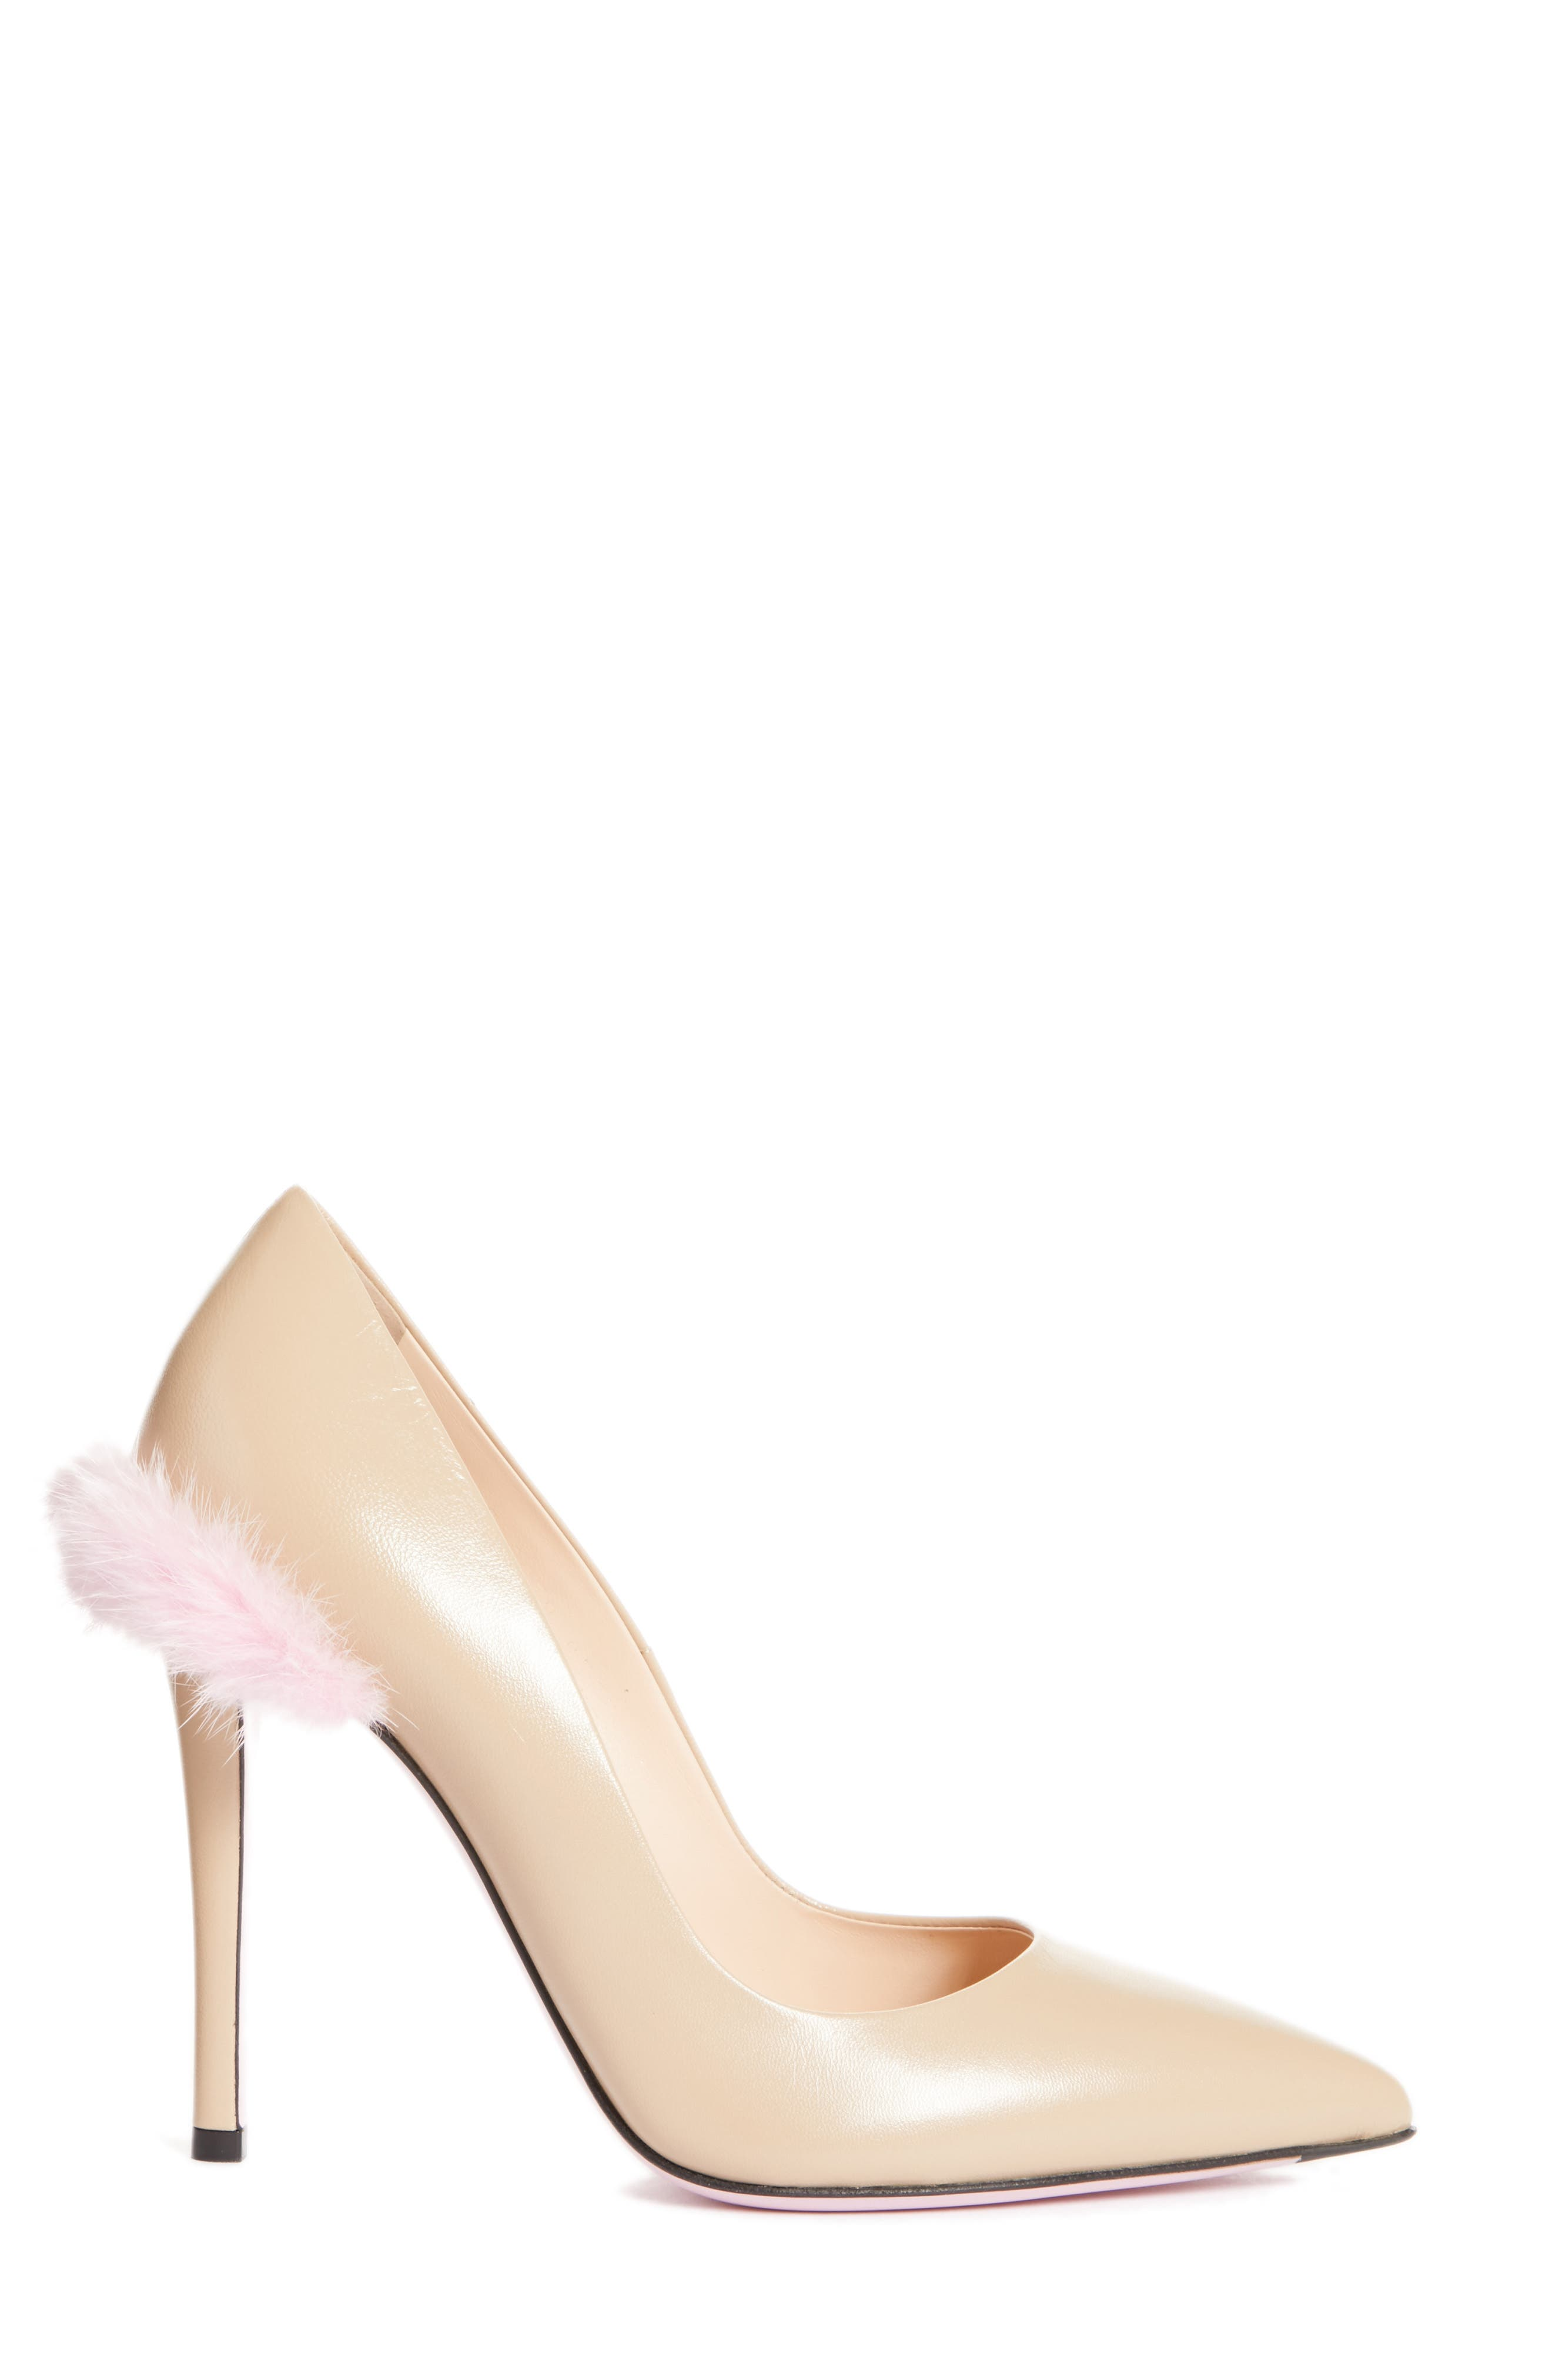 Duo Pointy Toe Pump with Genuine Mink Trim,                             Alternate thumbnail 3, color,                             Nude